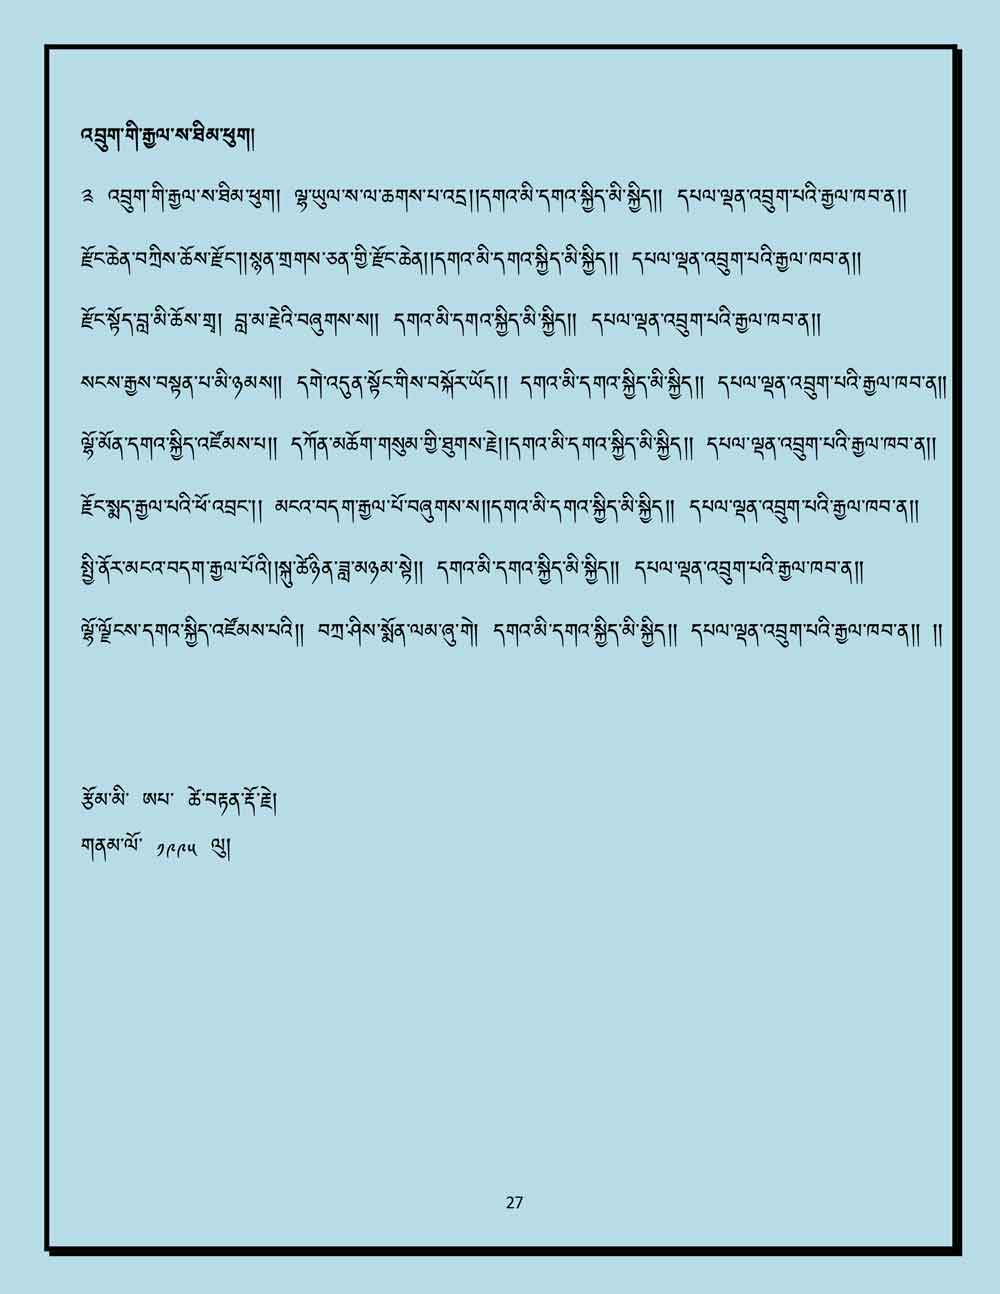 Ap-Tseten-Lyrics-27.jpg